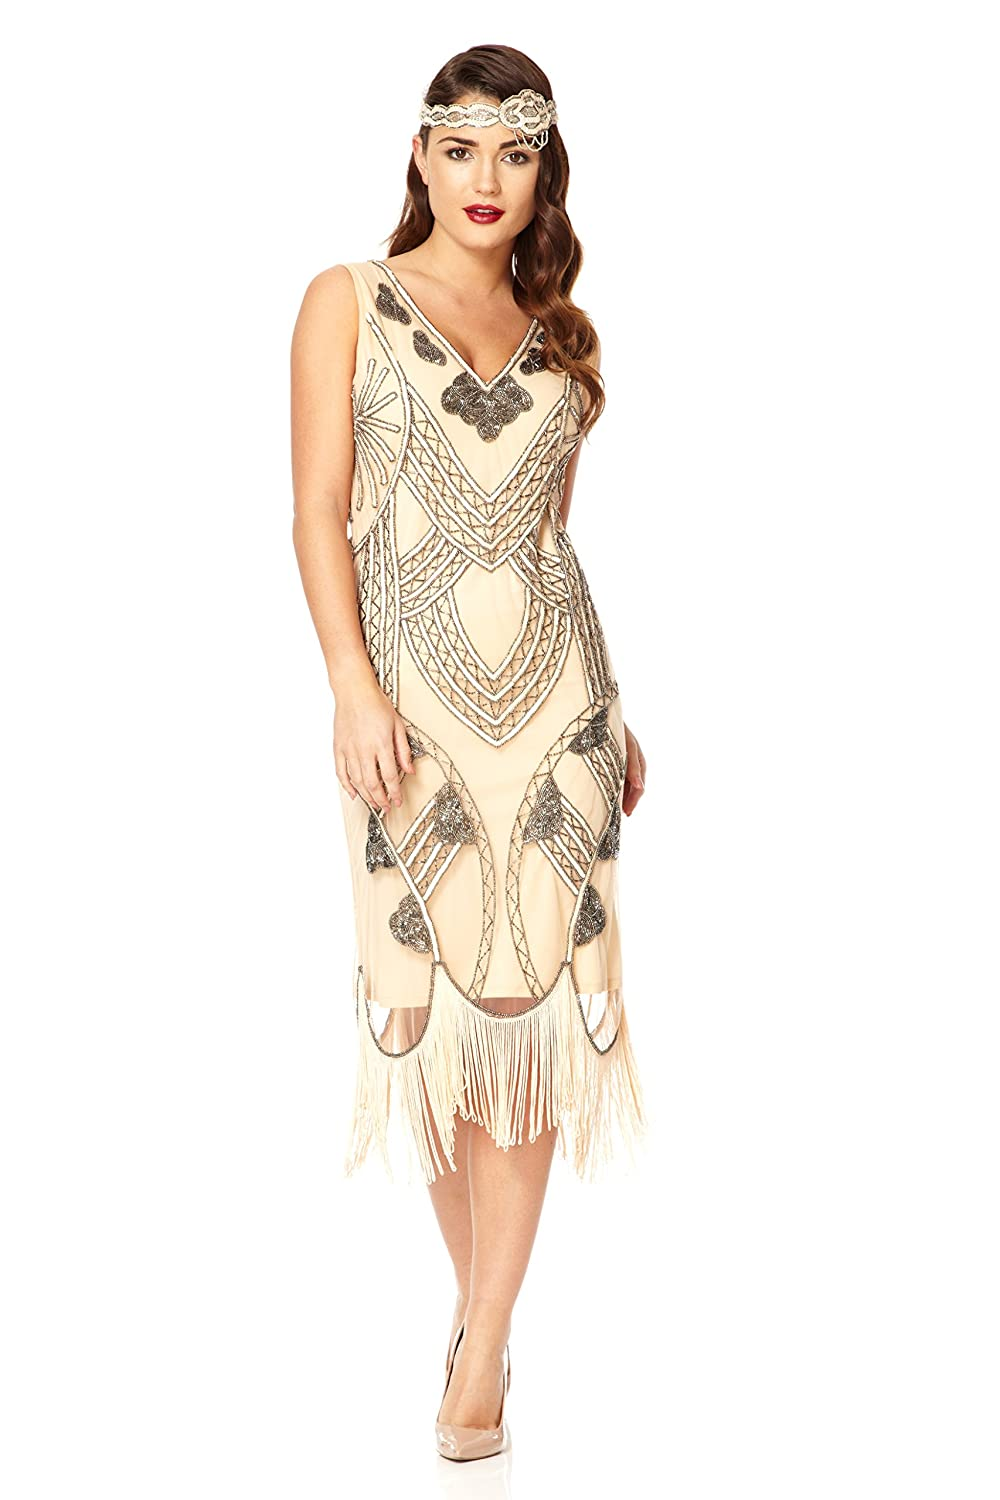 Best 1920s Prom Dresses – Great Gatsby Style Gowns Juliet Vintage Inspired Fringe Dress in Nude Blush $115.70 AT vintagedancer.com